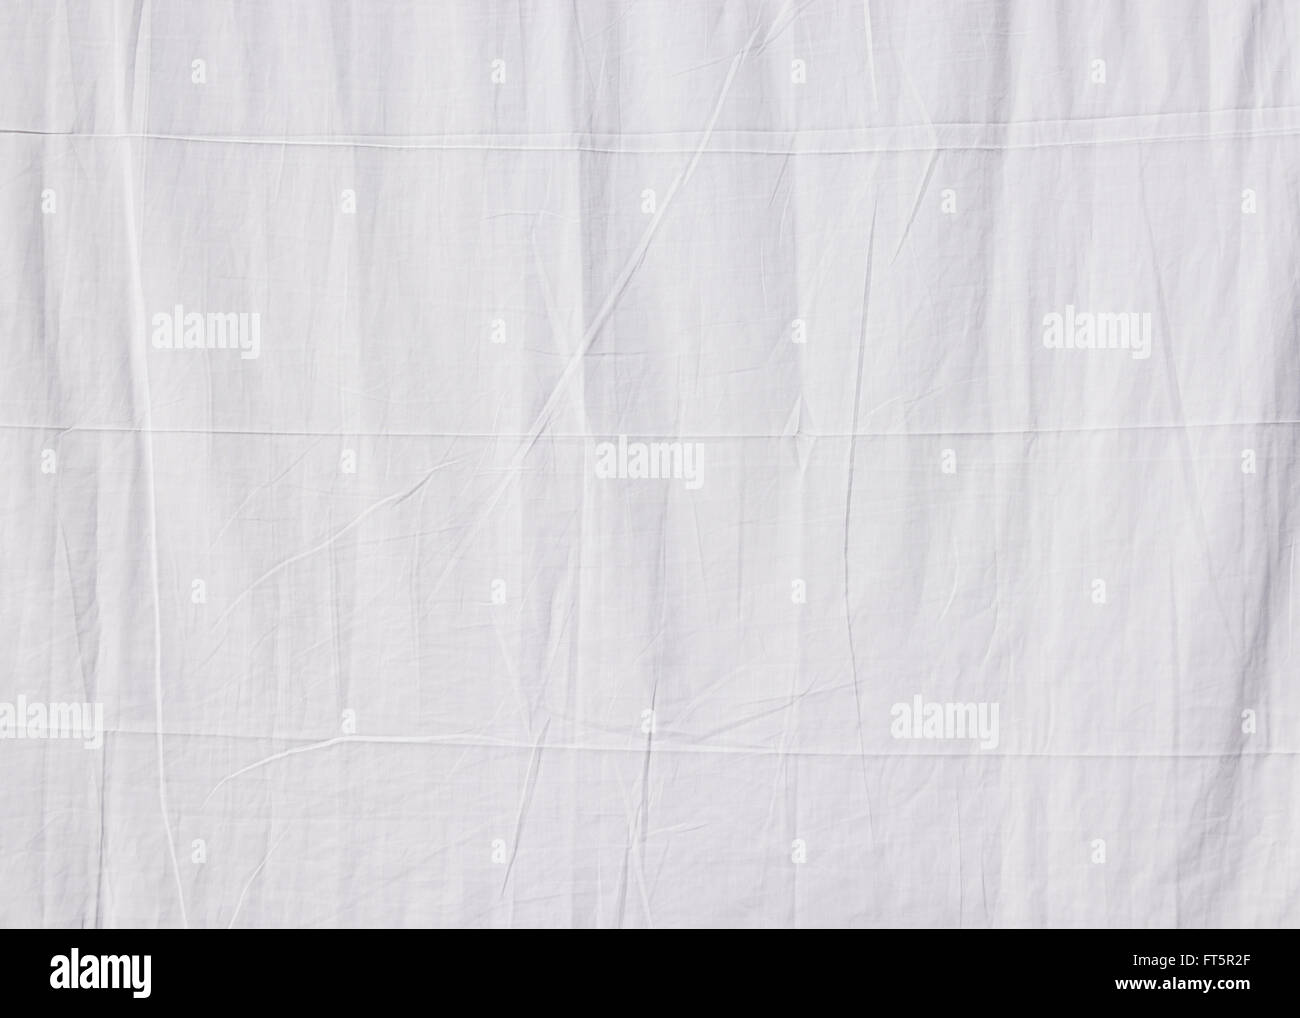 Closeup of a white cotton sheet drying in the sun - Stock Image